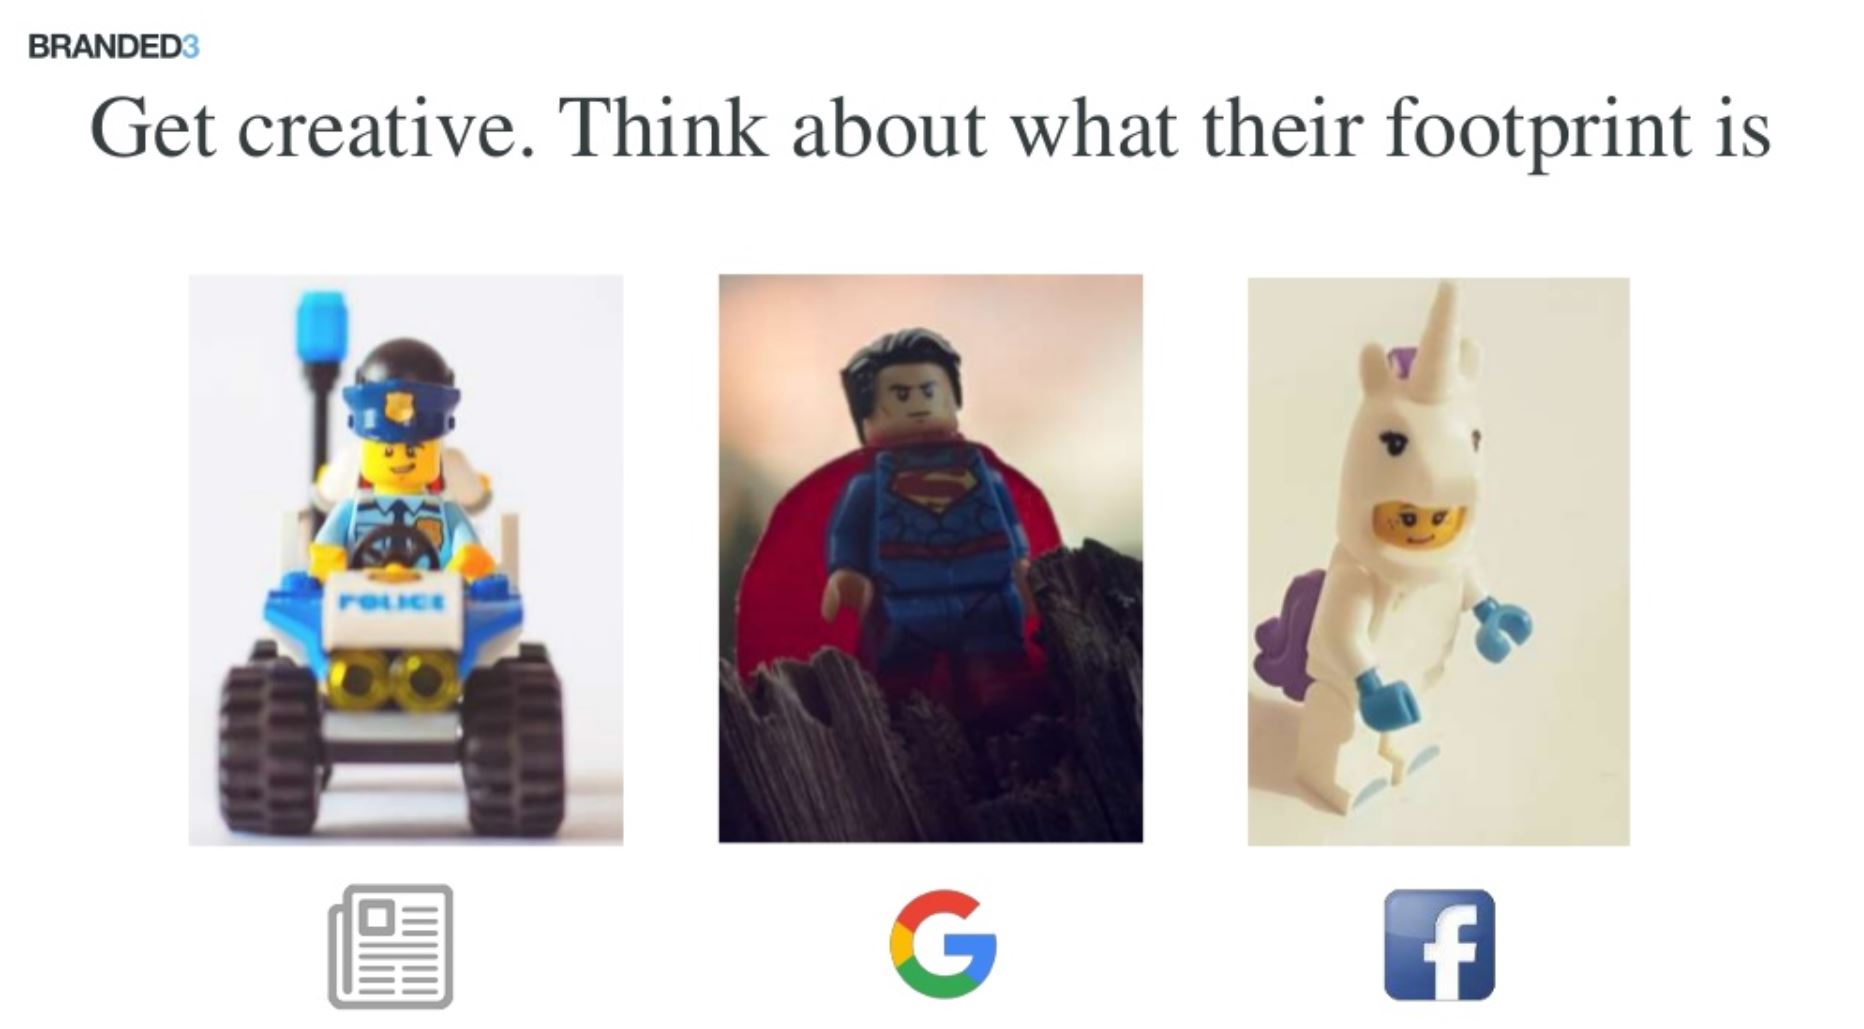 Image of lego figures with social network logos underneath indiciating where they might hang out online